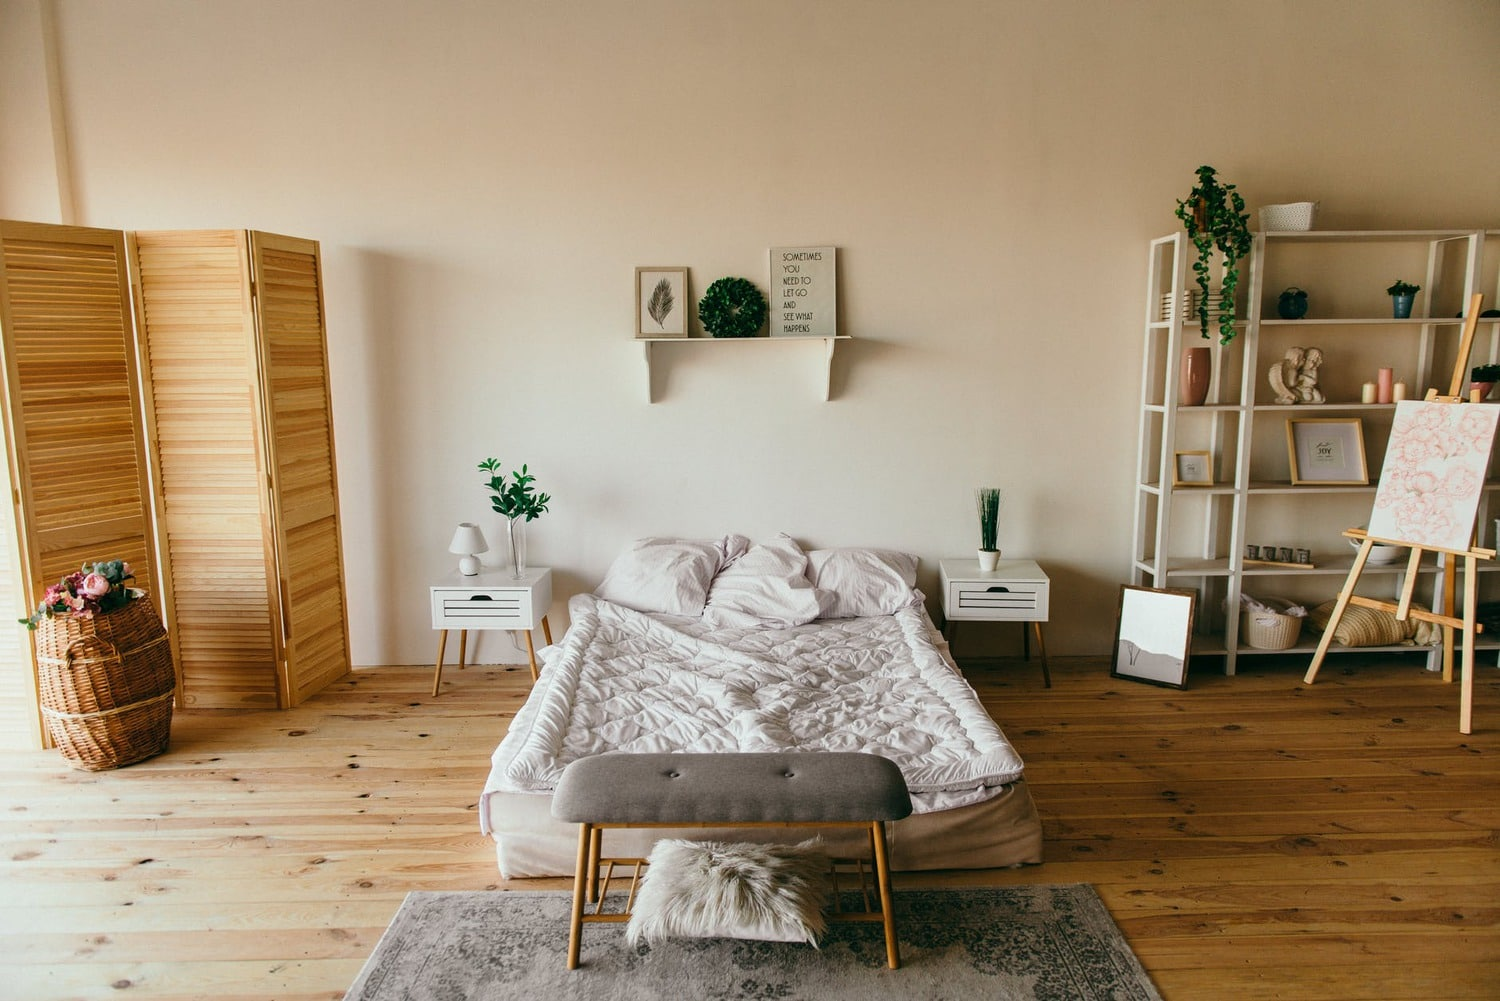 big bedroom area with bed, bench and shelves.